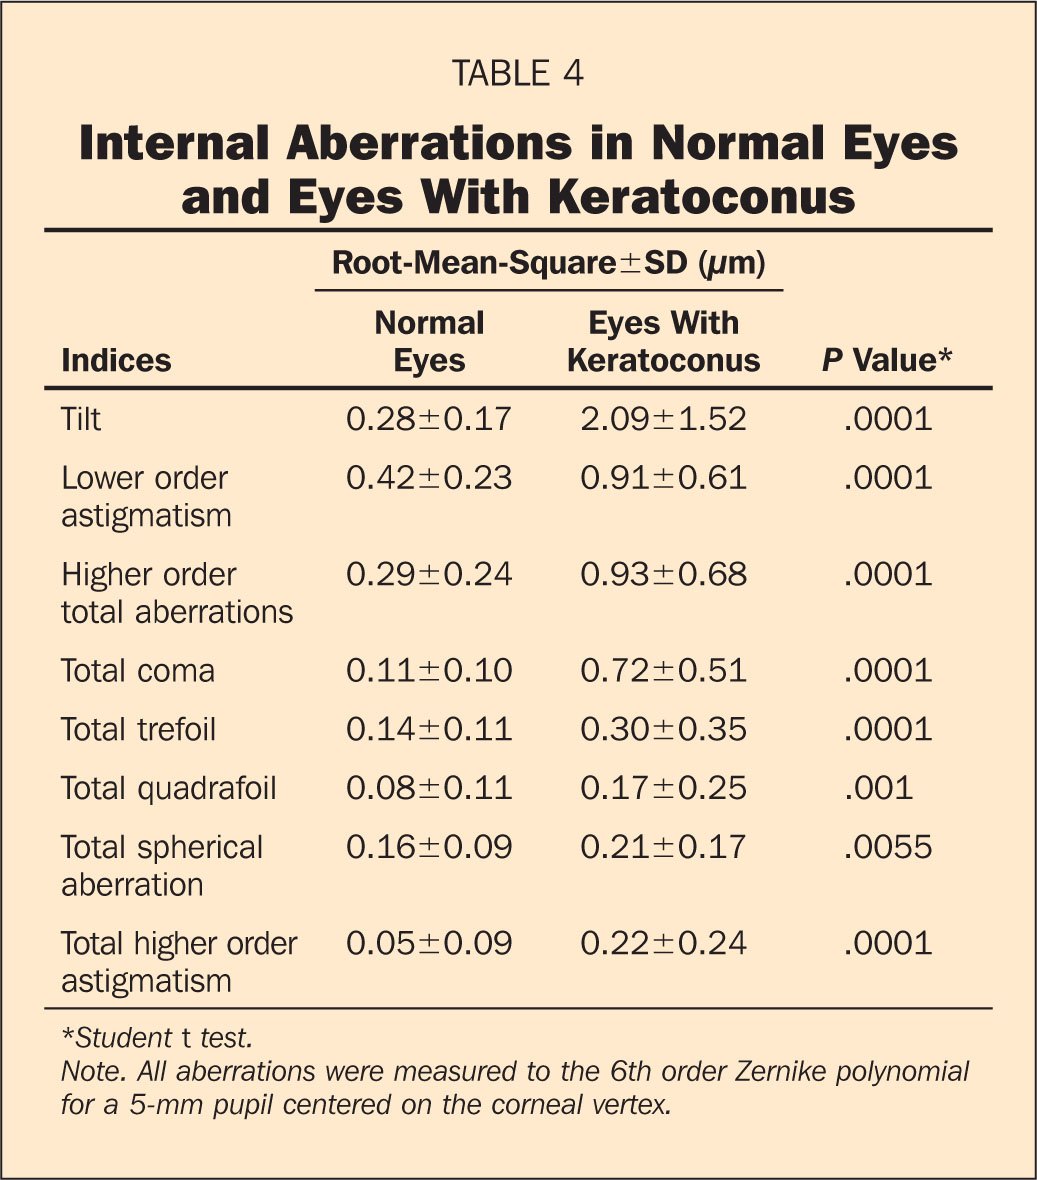 Internal Aberrations in Normal Eyes and Eyes with Keratoconus